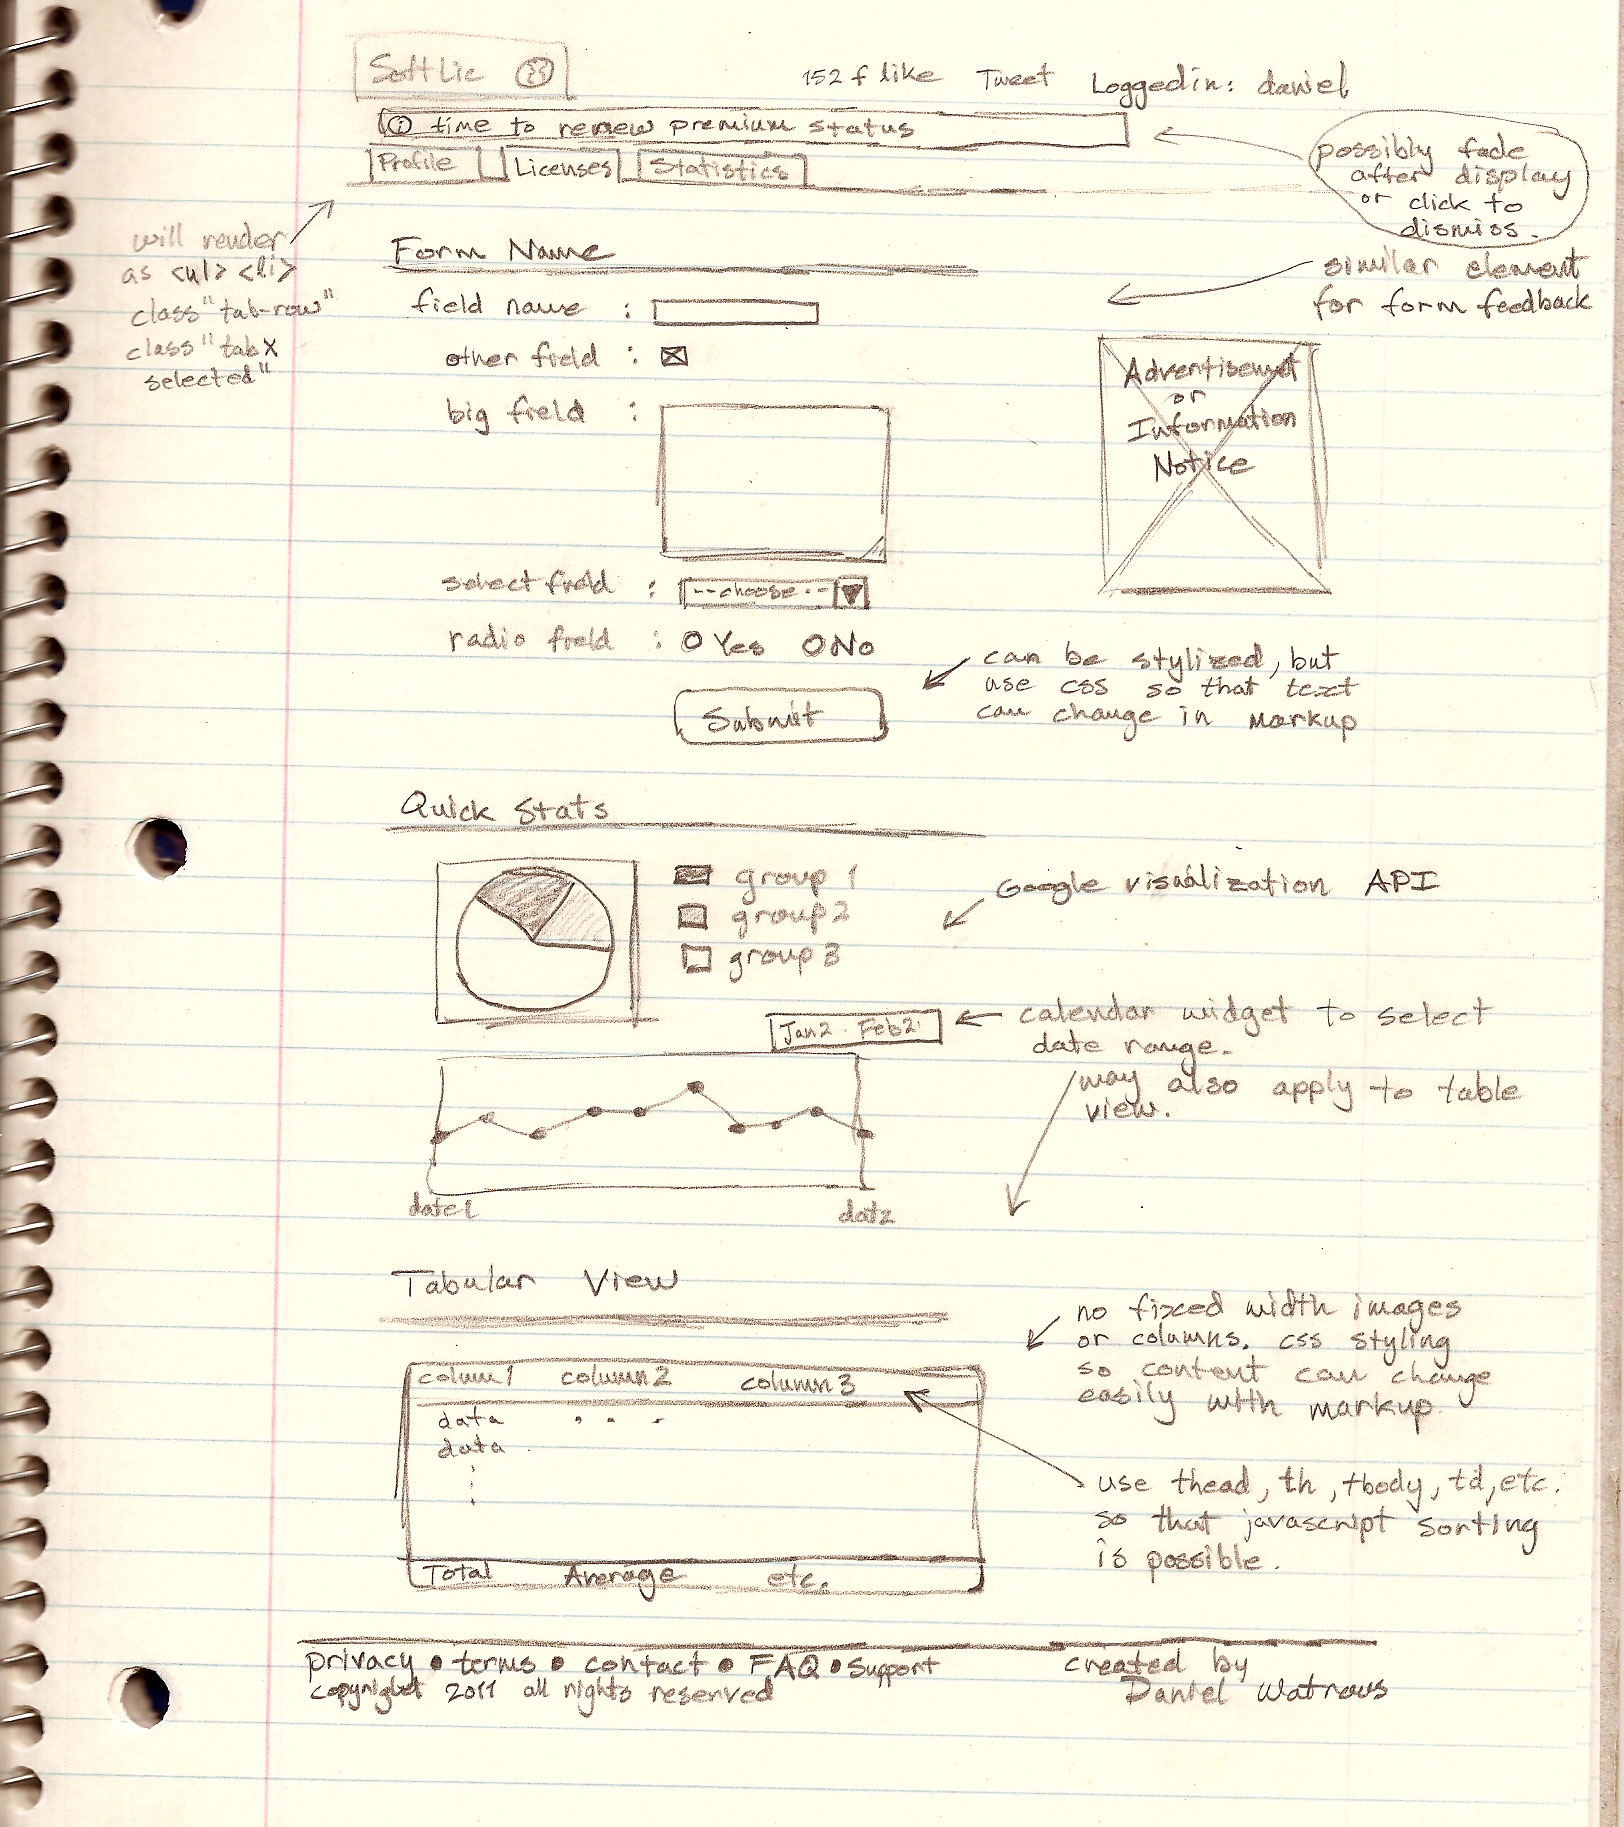 Software licensing: User interface design (with video)